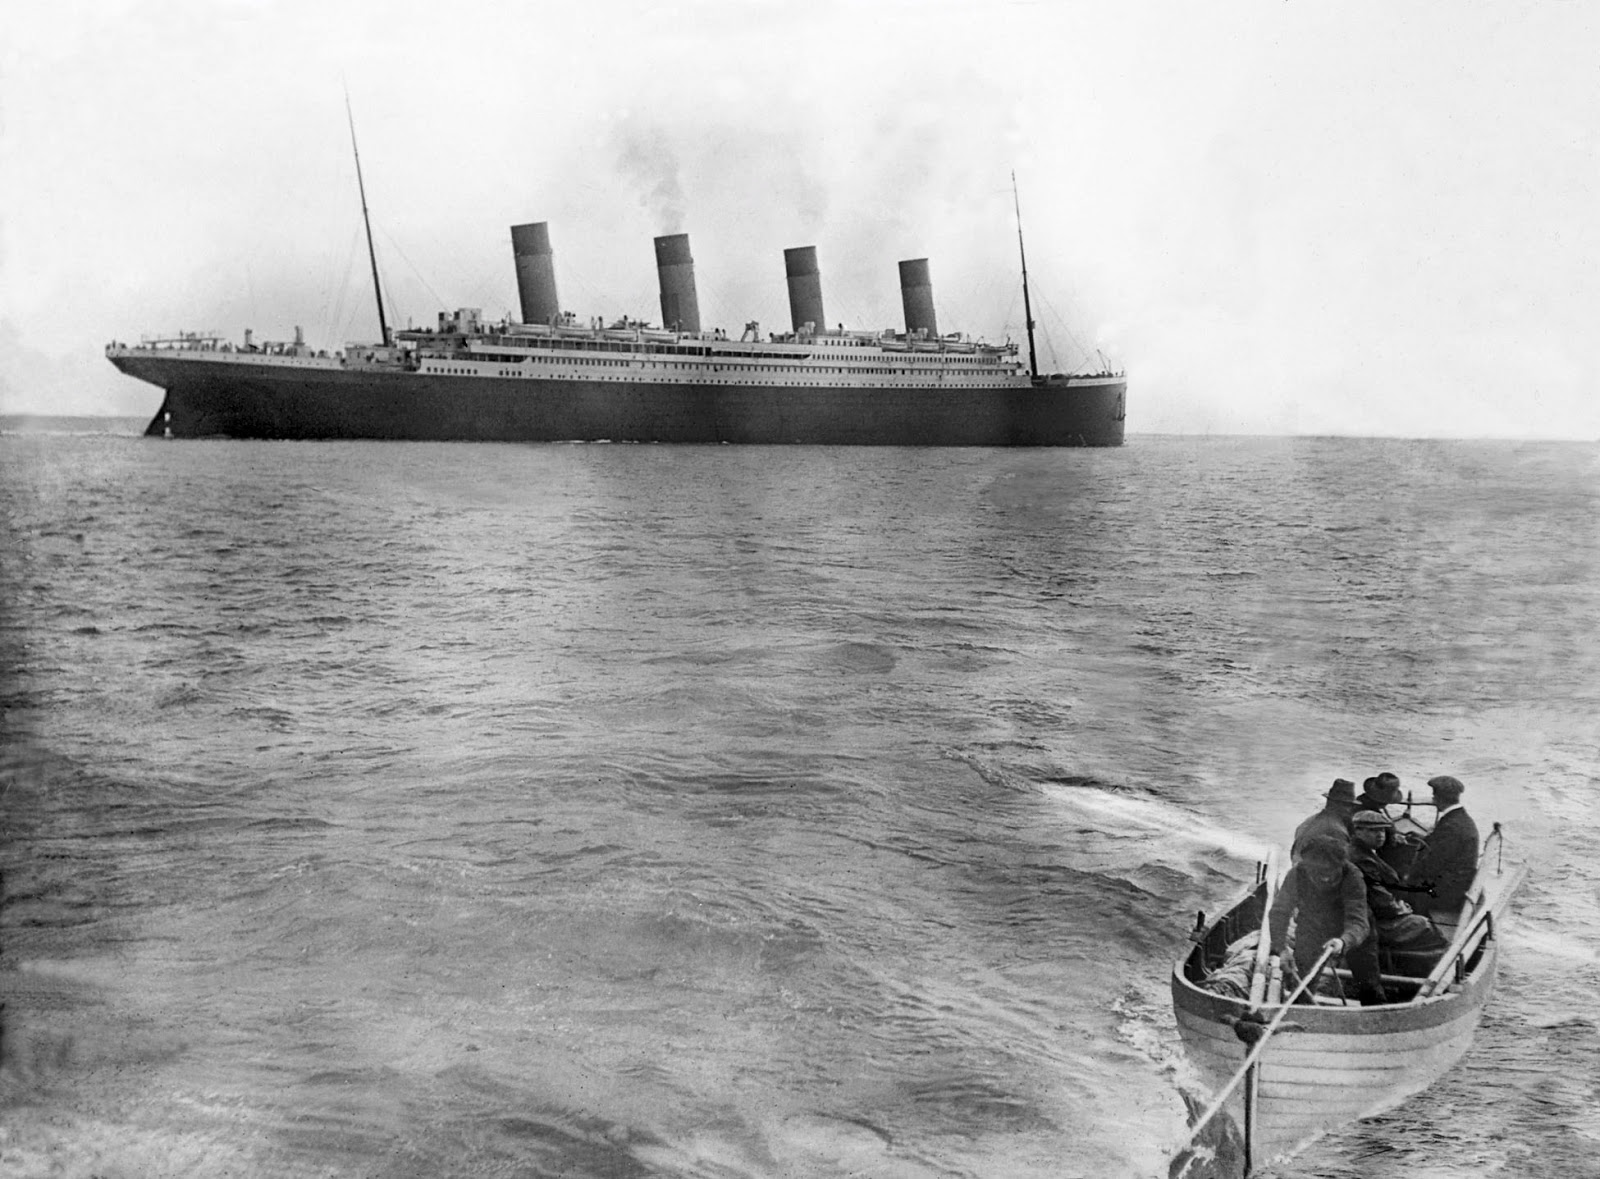 The last known photo of the RMS Titanic afloat